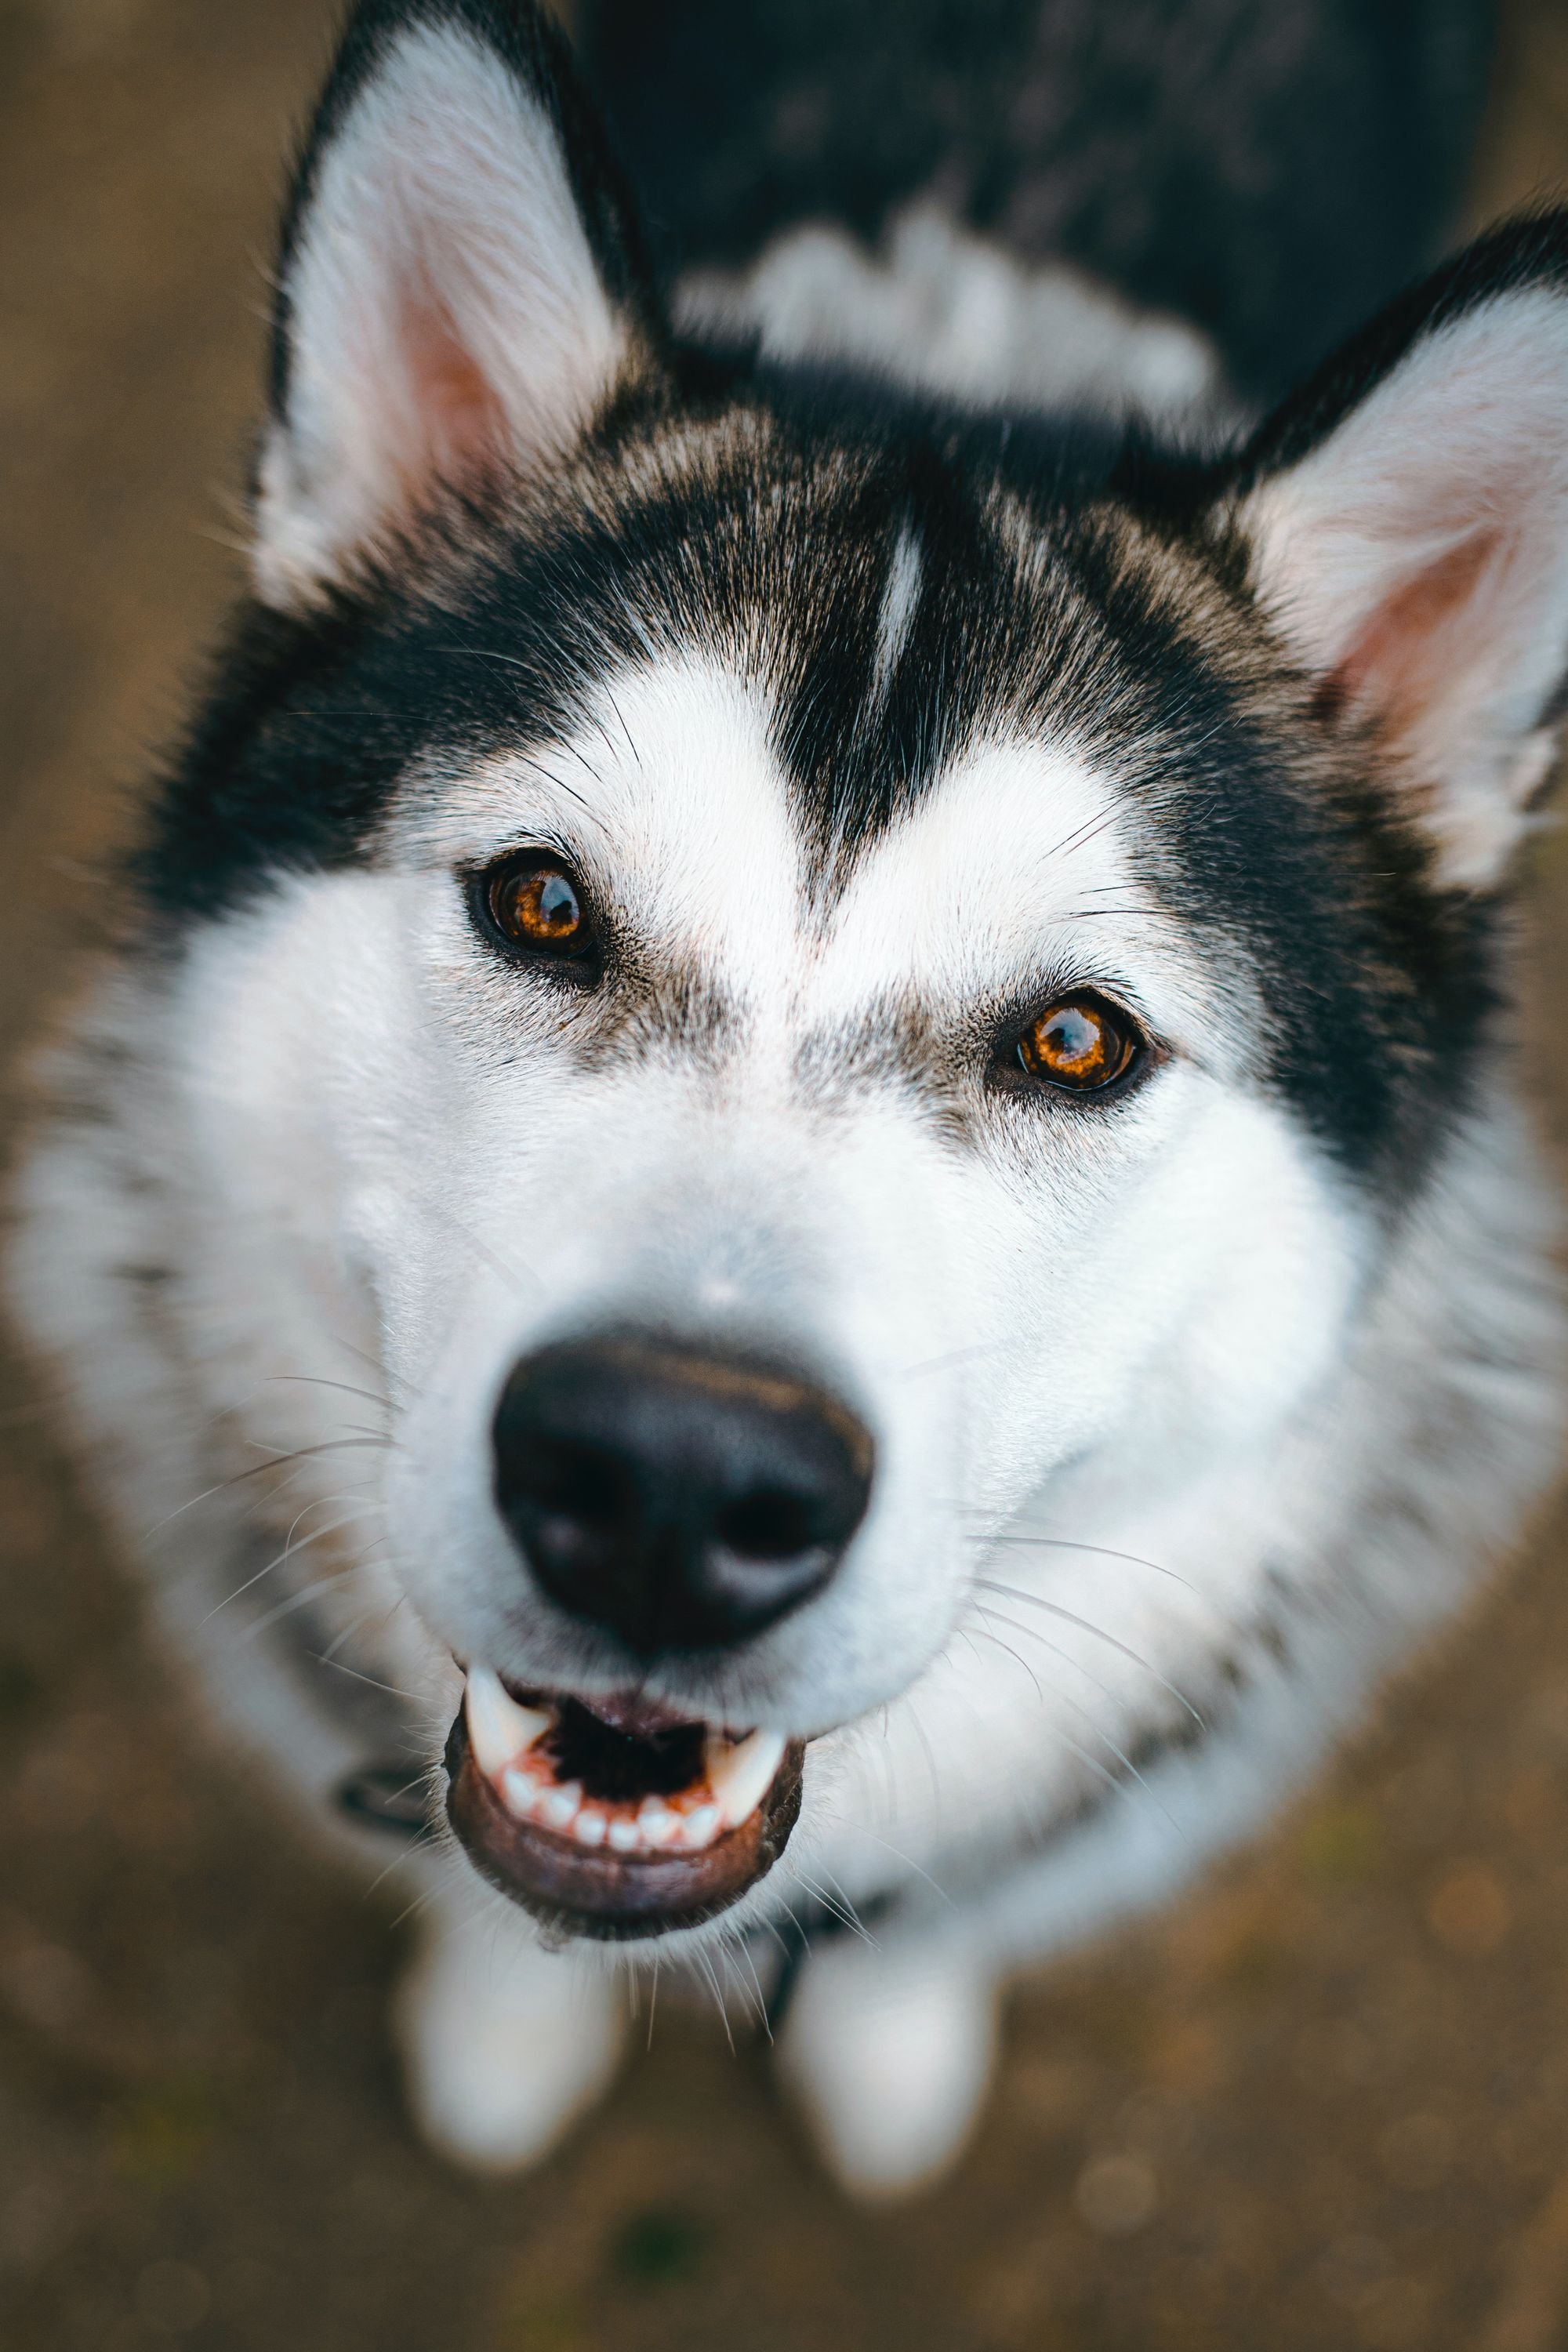 10 Simple Signs of a Husky's Affection: Ways that Huskies Show You They Love You!